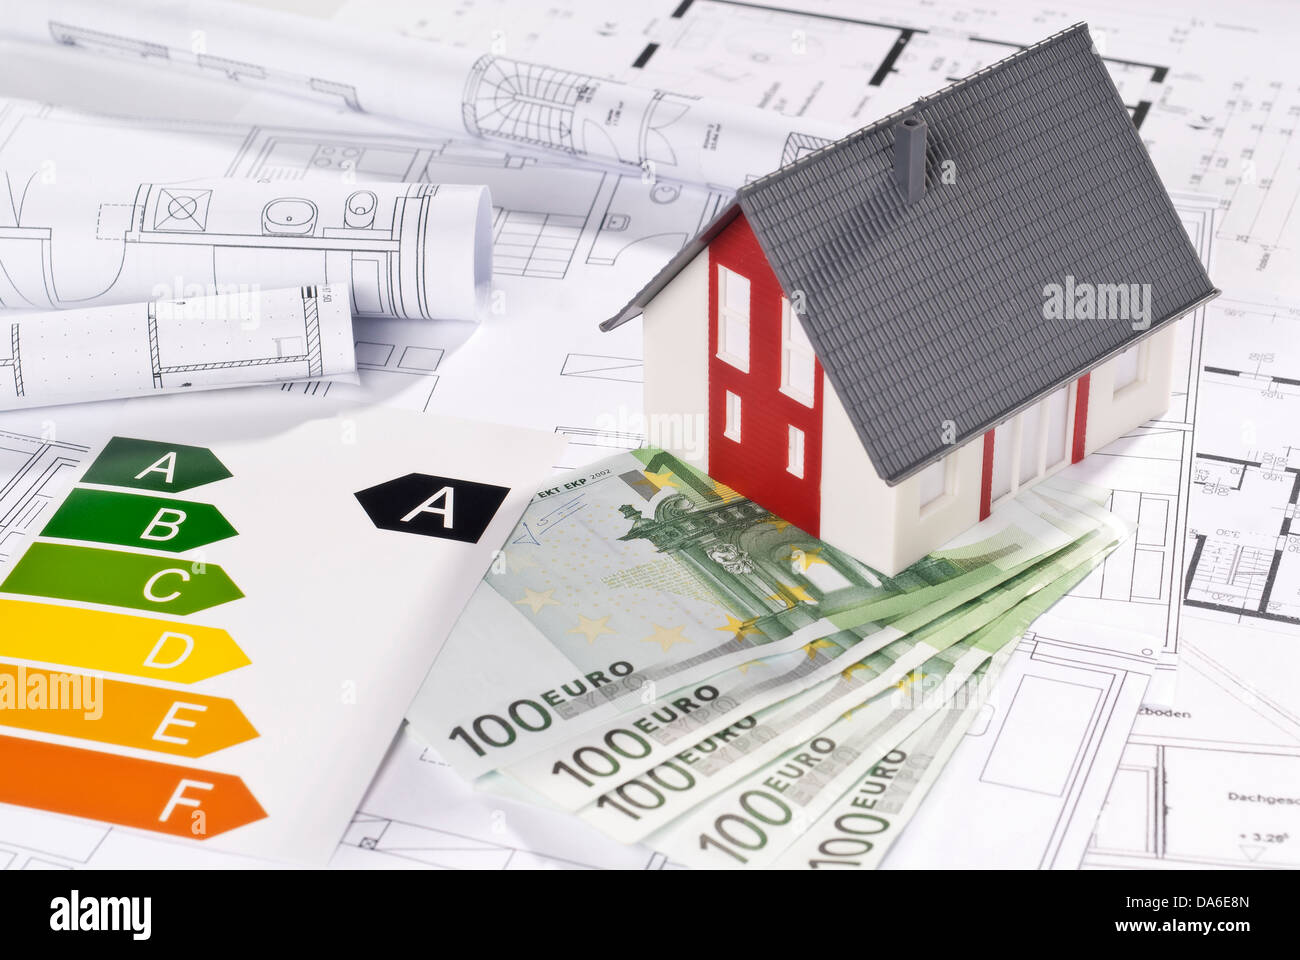 Energy efficiency label with architectural model, blueprints and bills. - Stock Image